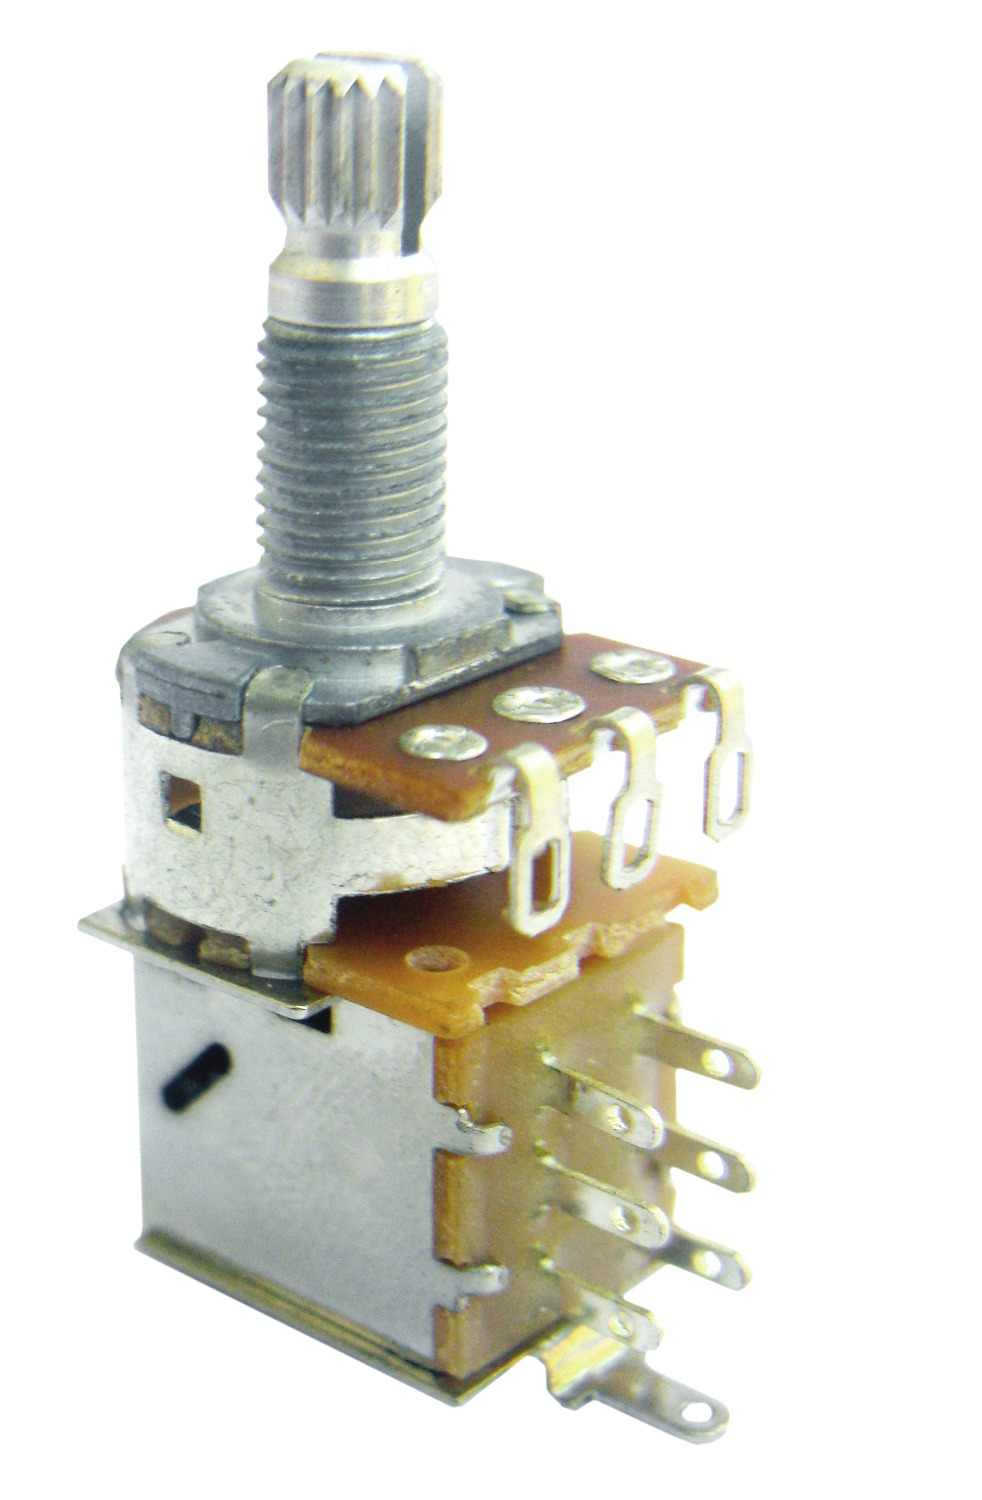 hight resolution of center detend push pull dpdt a 50k a 100k b50k b100k with central click switch potentiometer